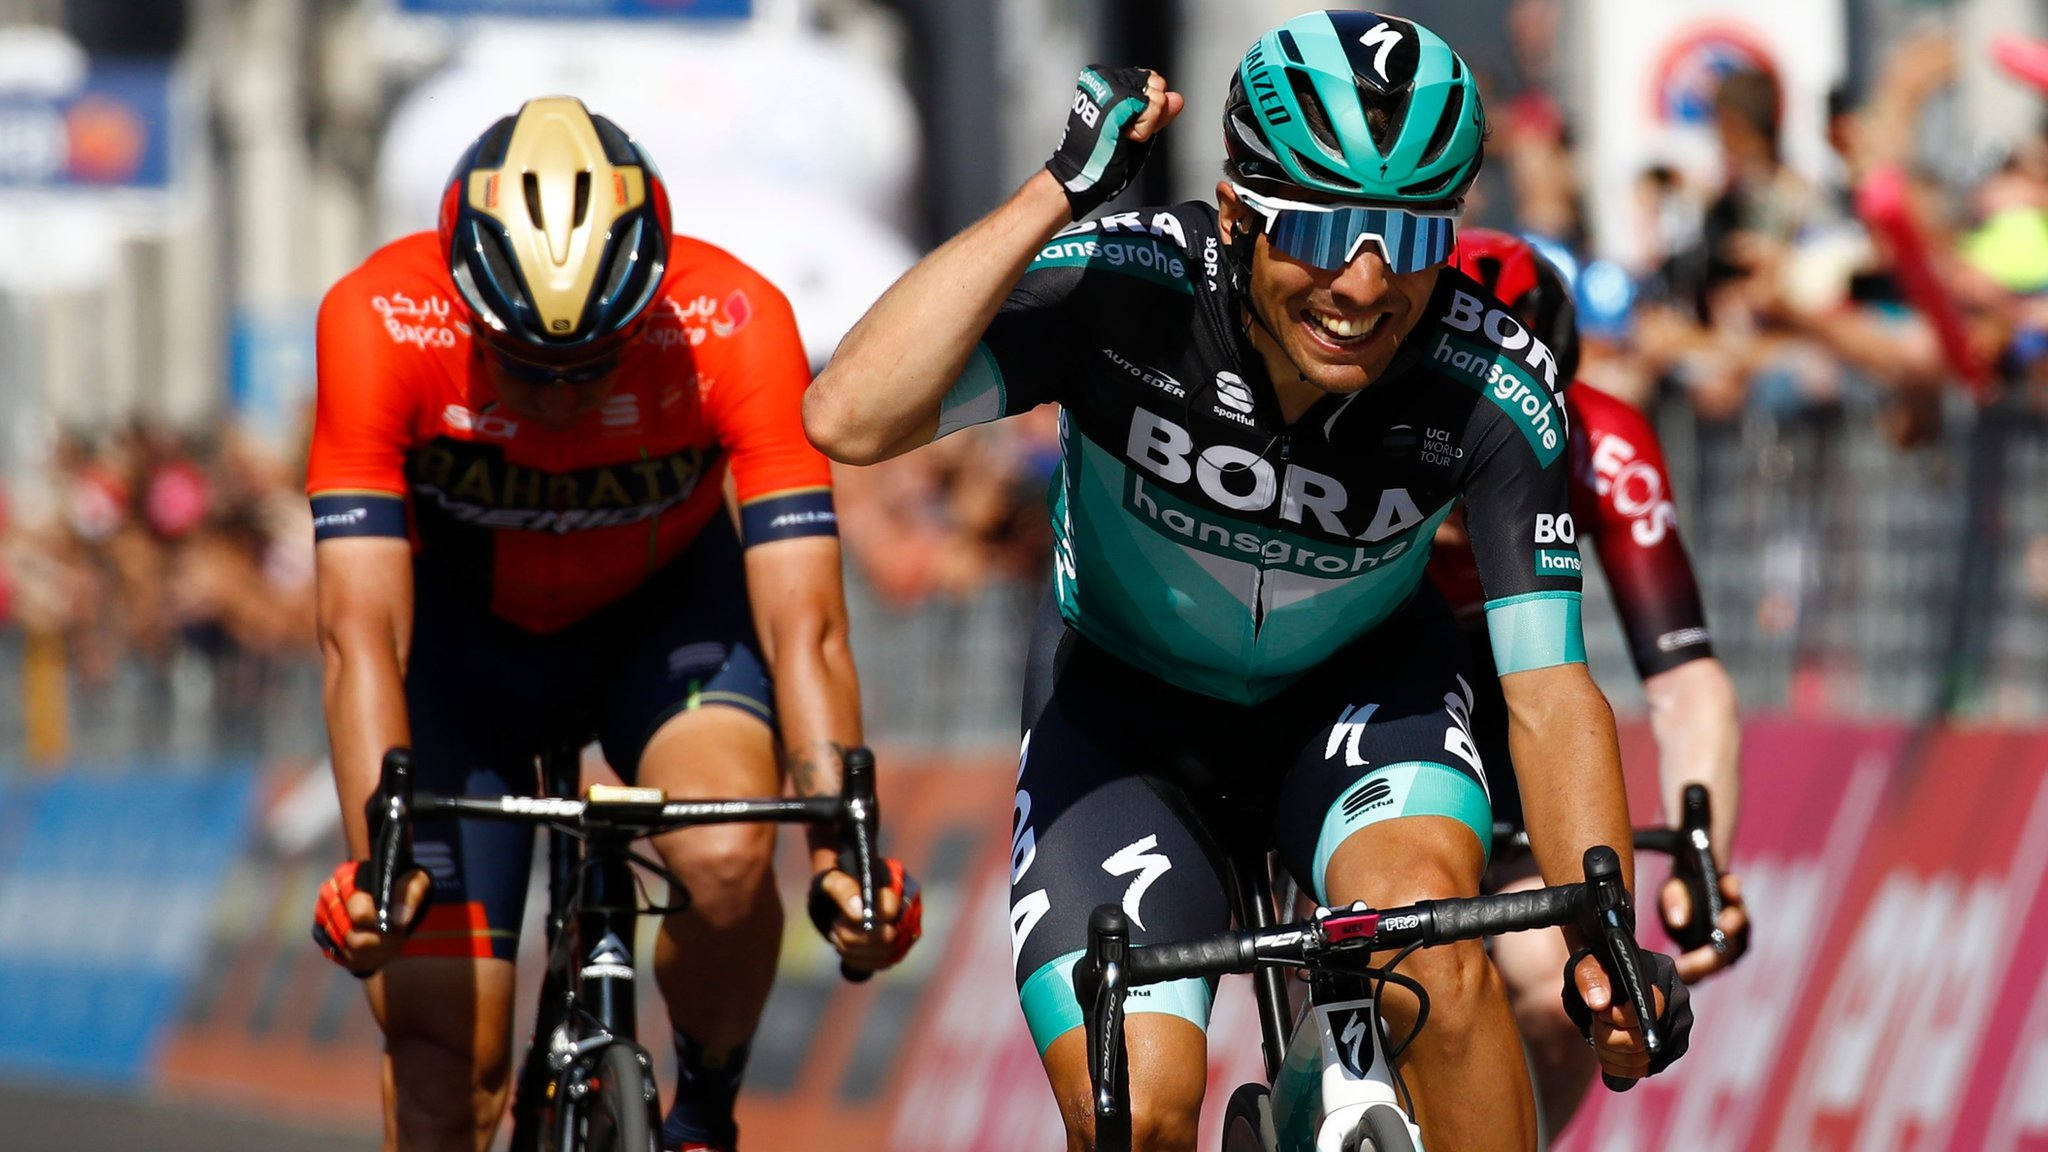 Giro d'Italia: Cesare Benedetti wins stage 12 in opening day of the Alps